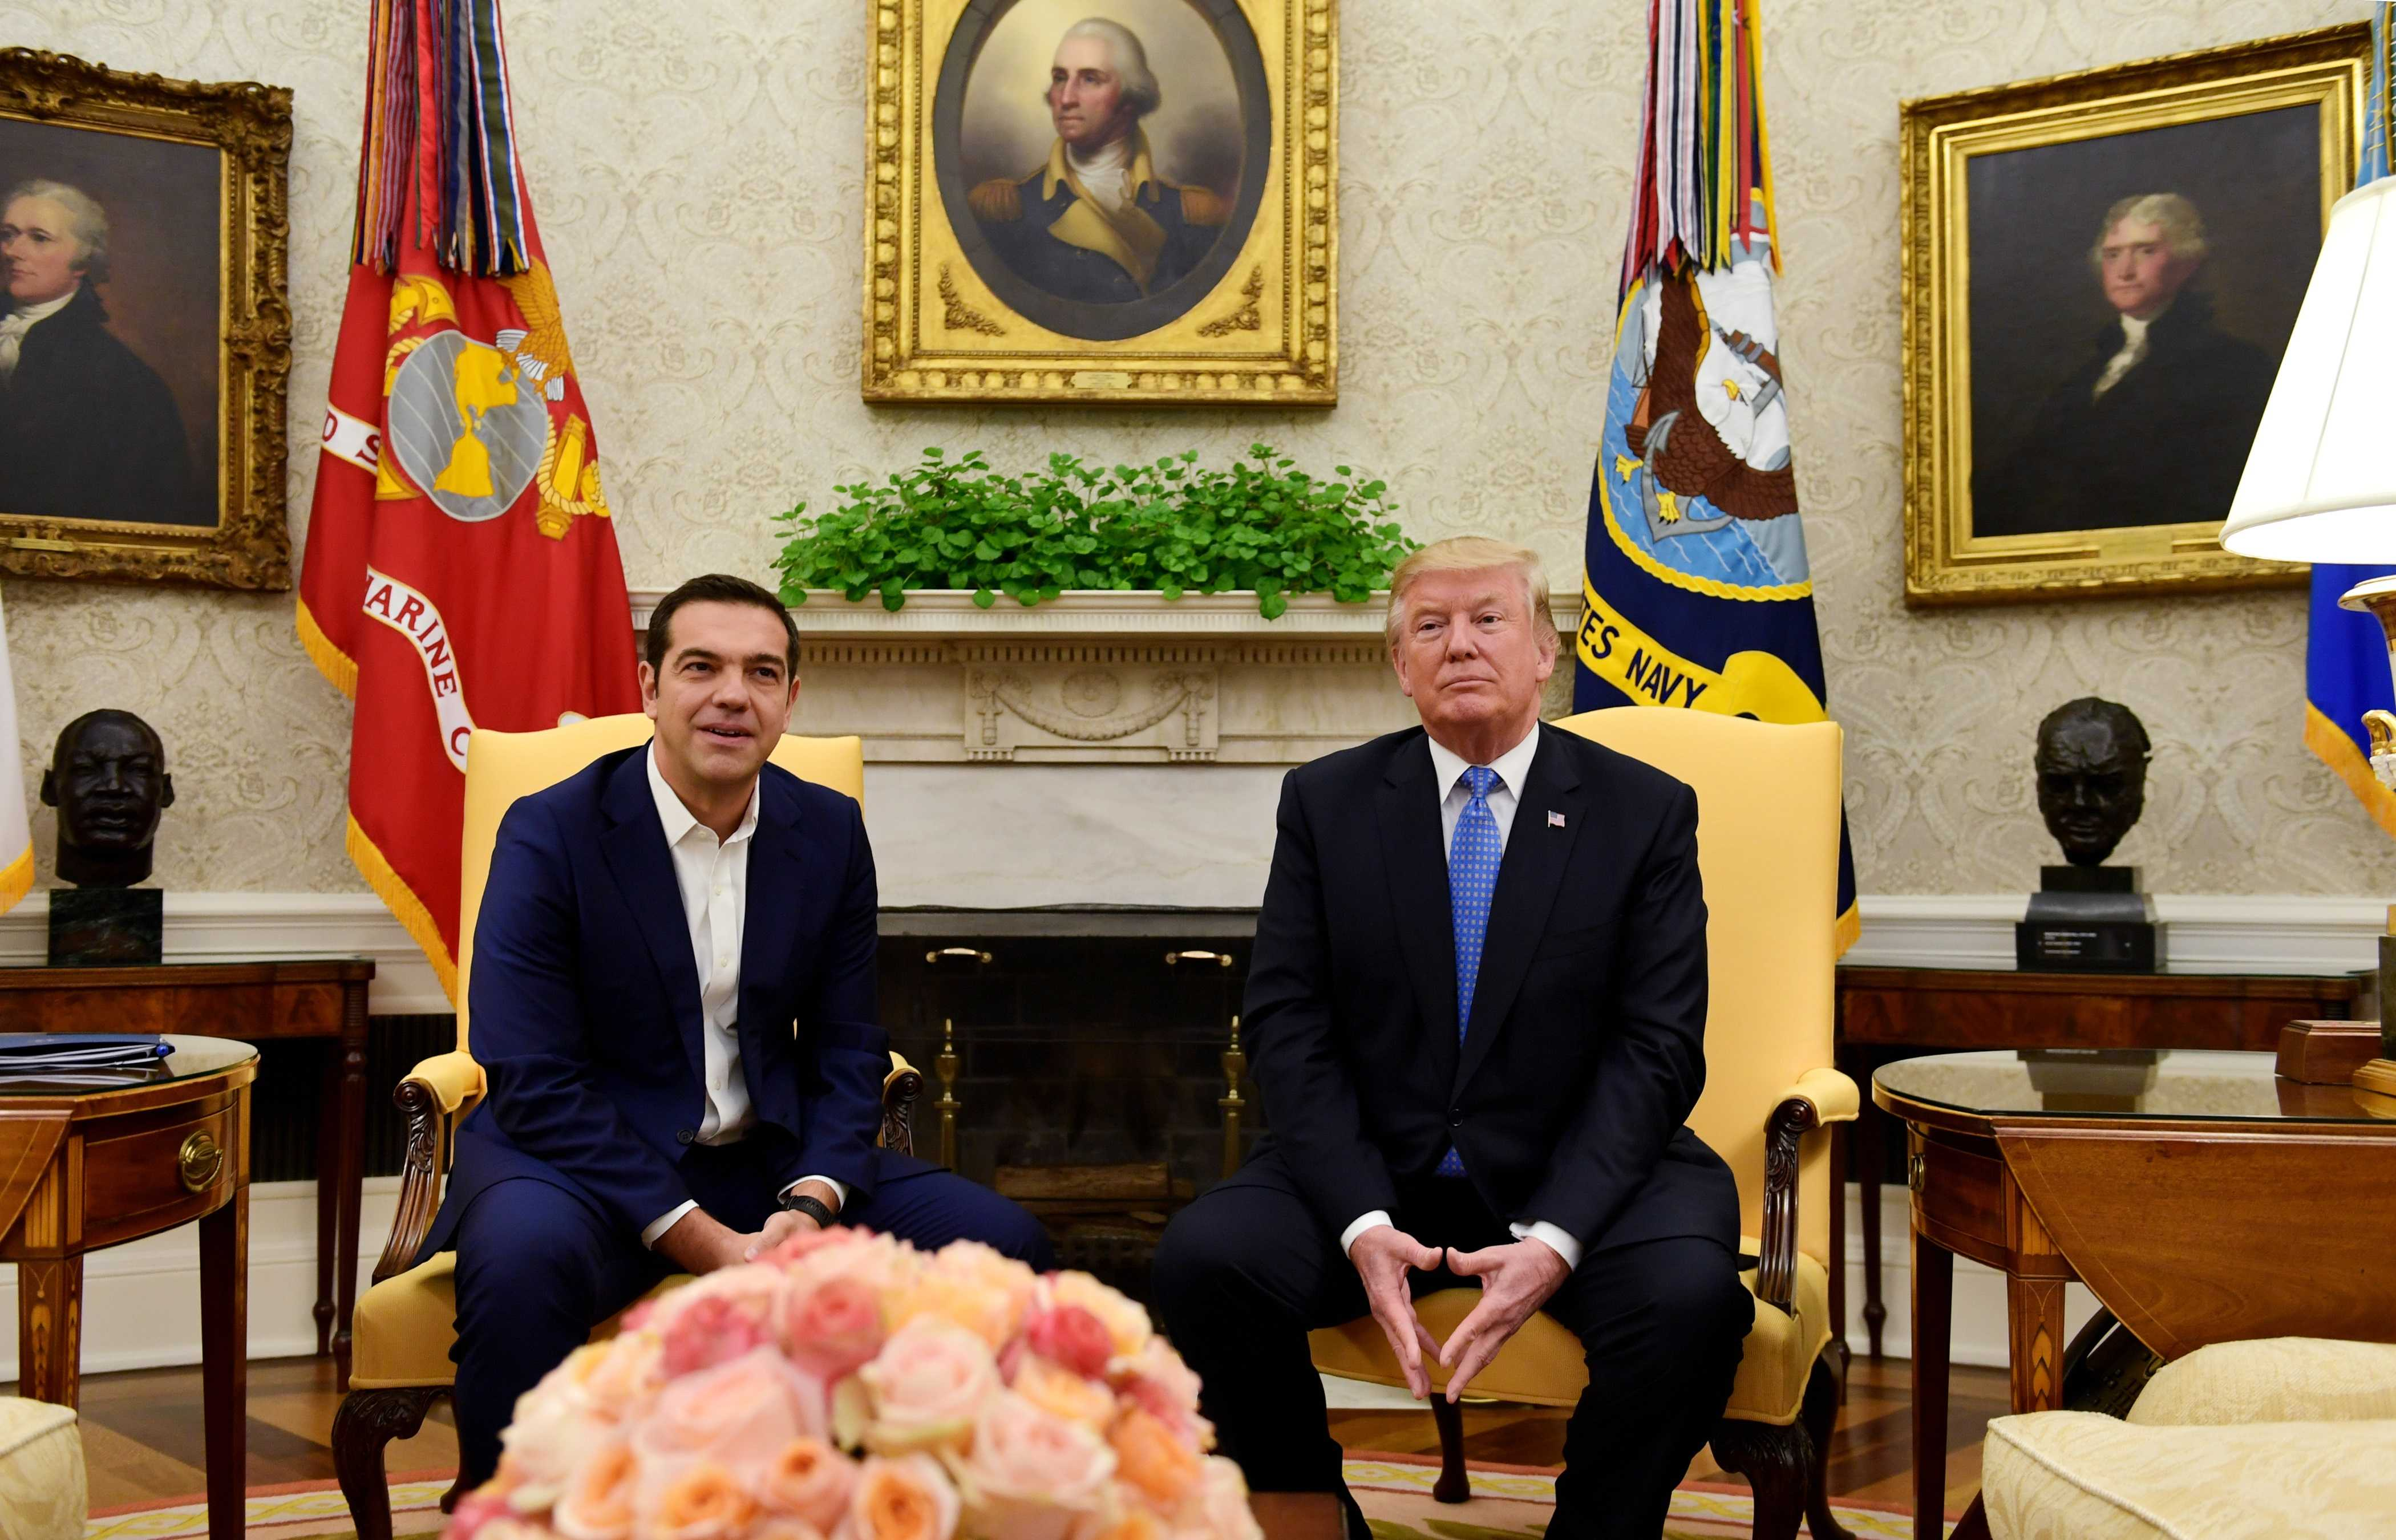 WATCH LIVE: President Trump holds joint news conference with Greek Prime Minister Alexis Tsipras